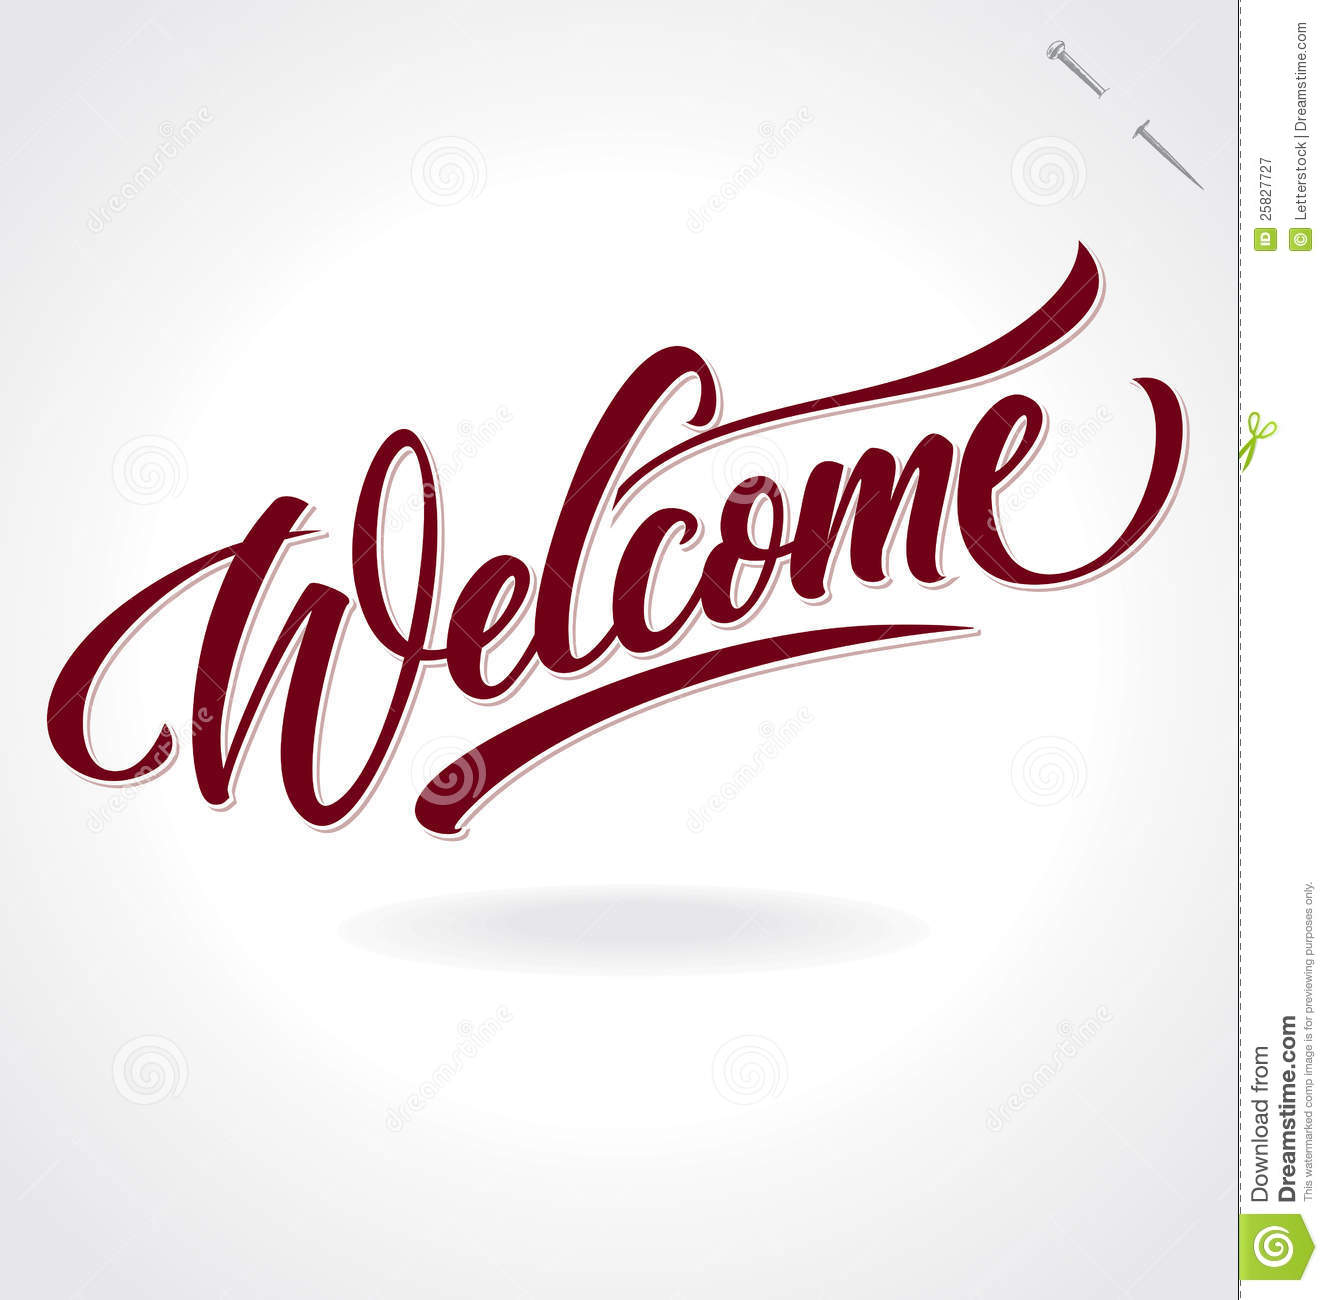 Welcome to VECTOR-IP